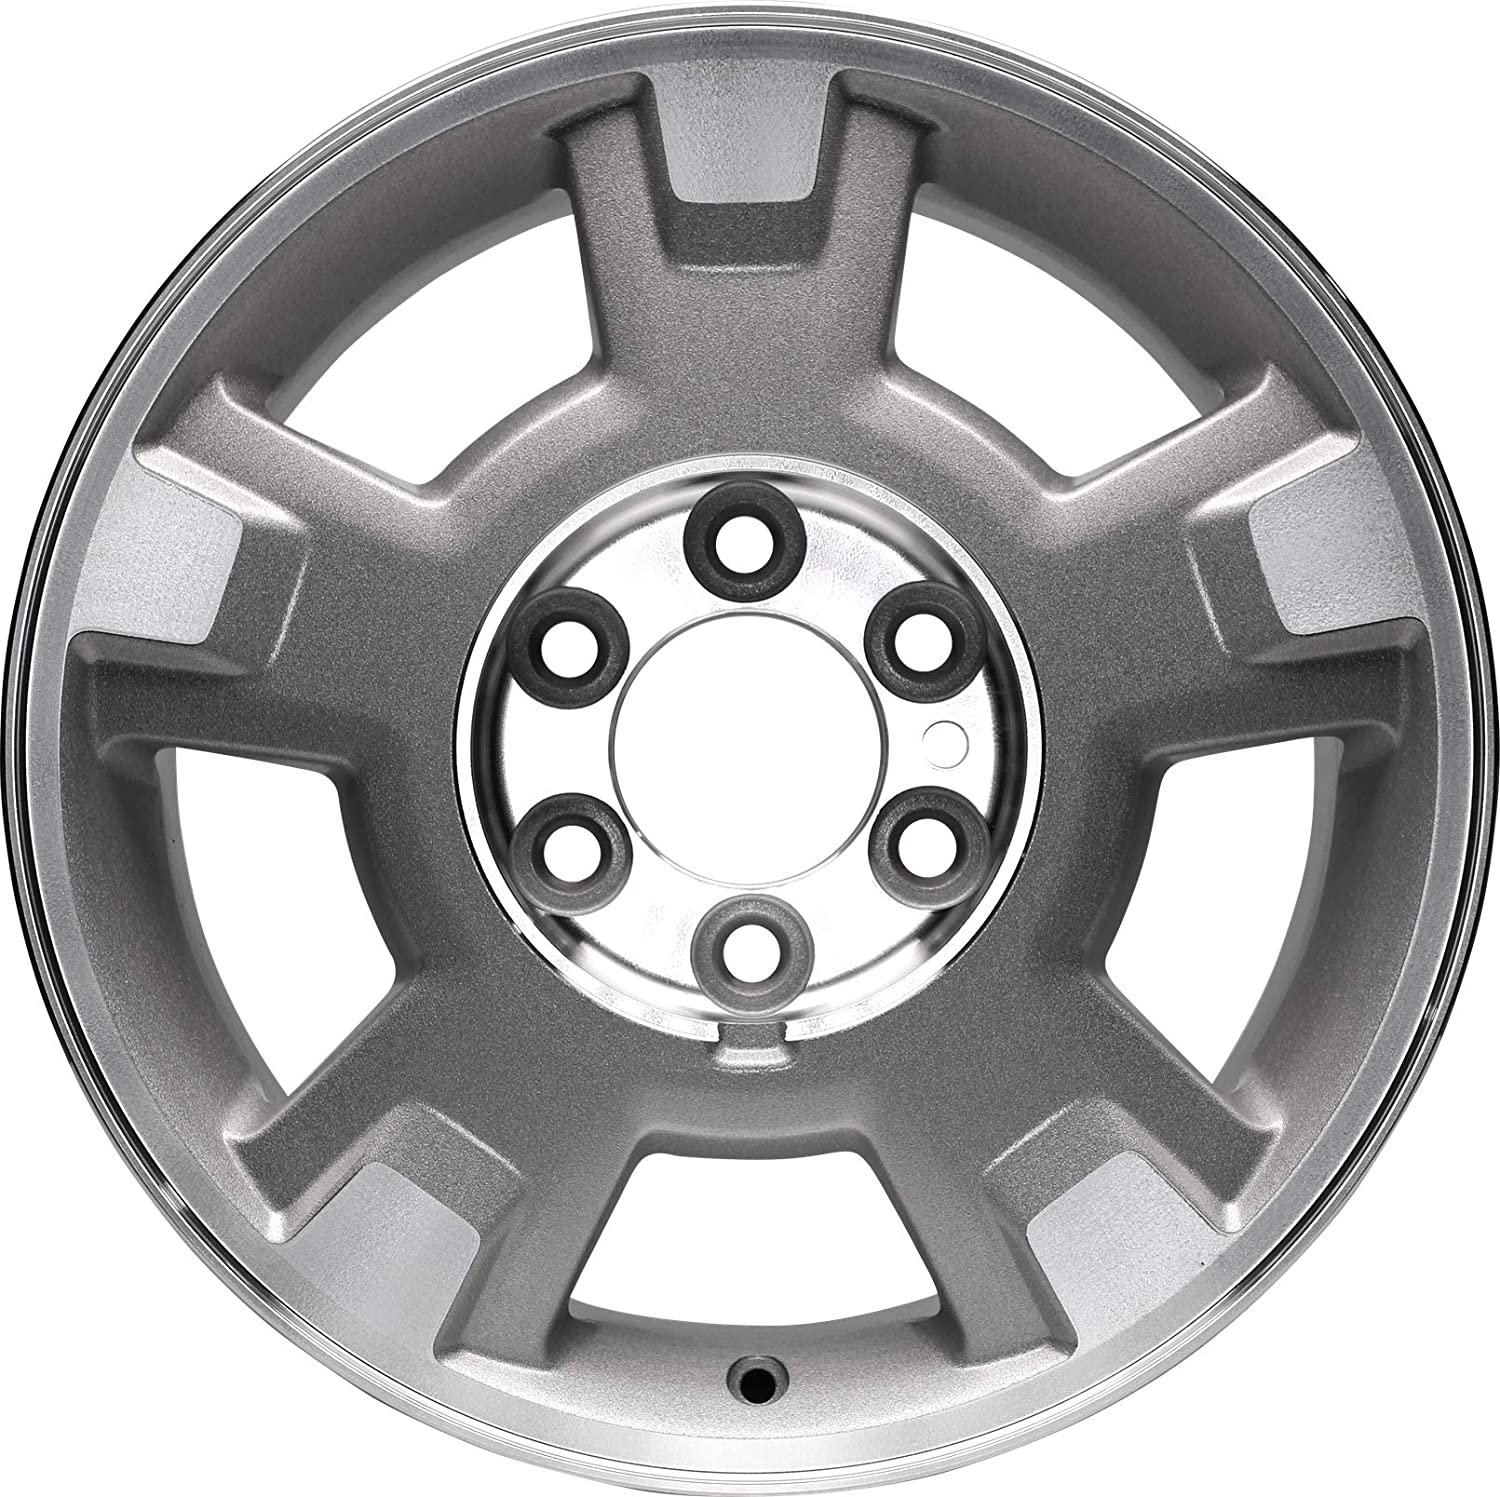 Partsynergy Replacement For New Aluminum Alloy Wheel Rim 17 Inch Fits 2009-2014 Ford F-150 6-127mm 5 Spokes